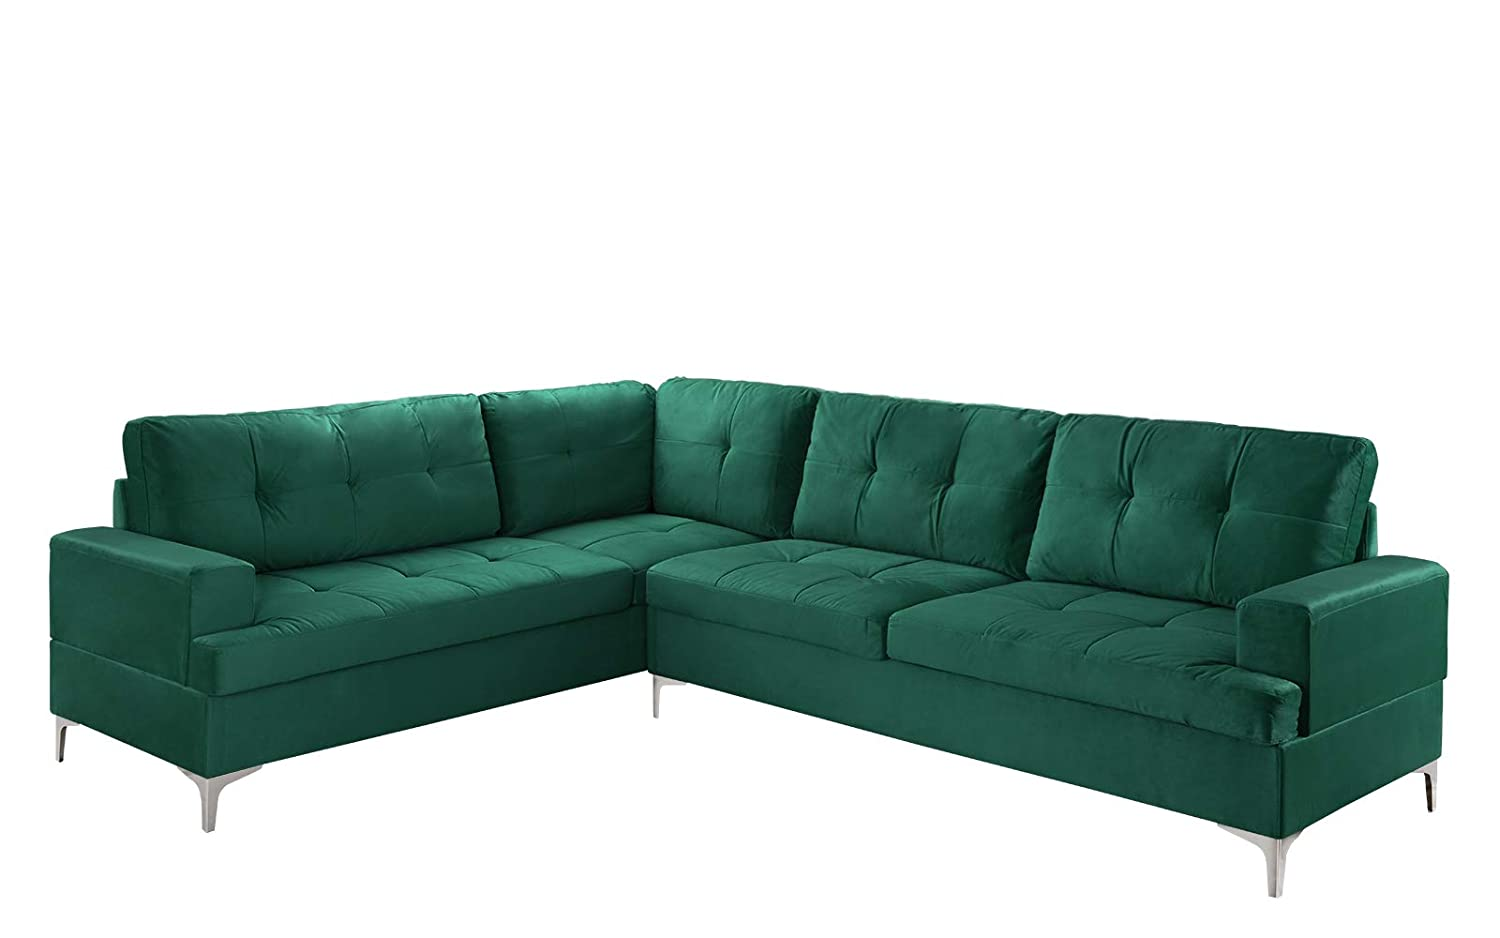 Classic Large Tufted Velvet Sectional Sofa, Living Room L-Shape Couch  (Green)